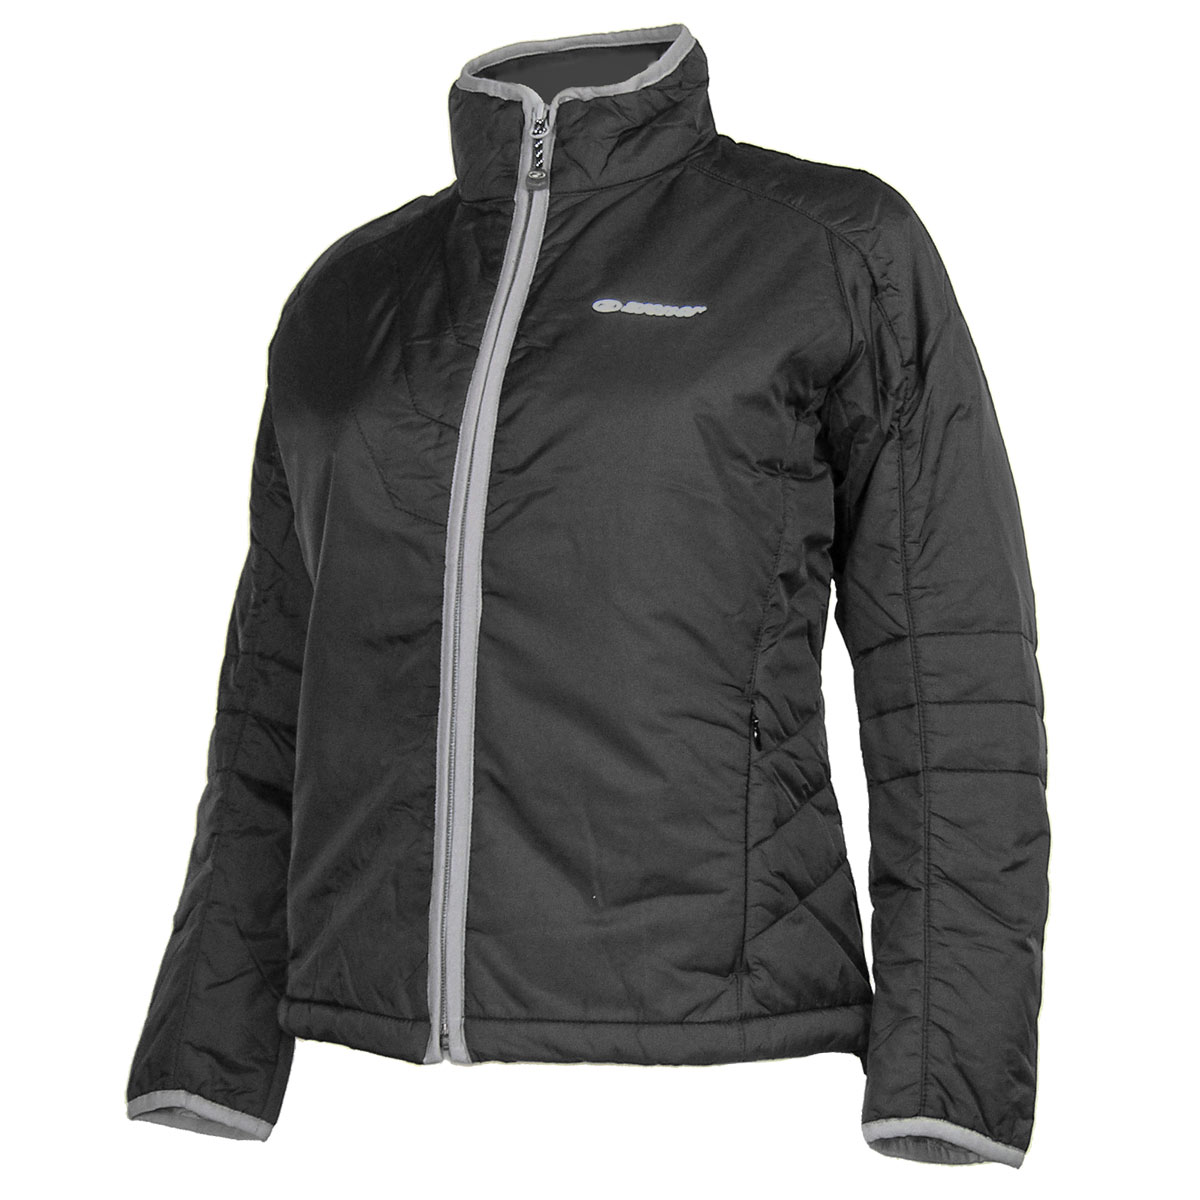 ziener primaloft jacke damen herren skijacke snowboardjacke unterziehjacke ebay. Black Bedroom Furniture Sets. Home Design Ideas